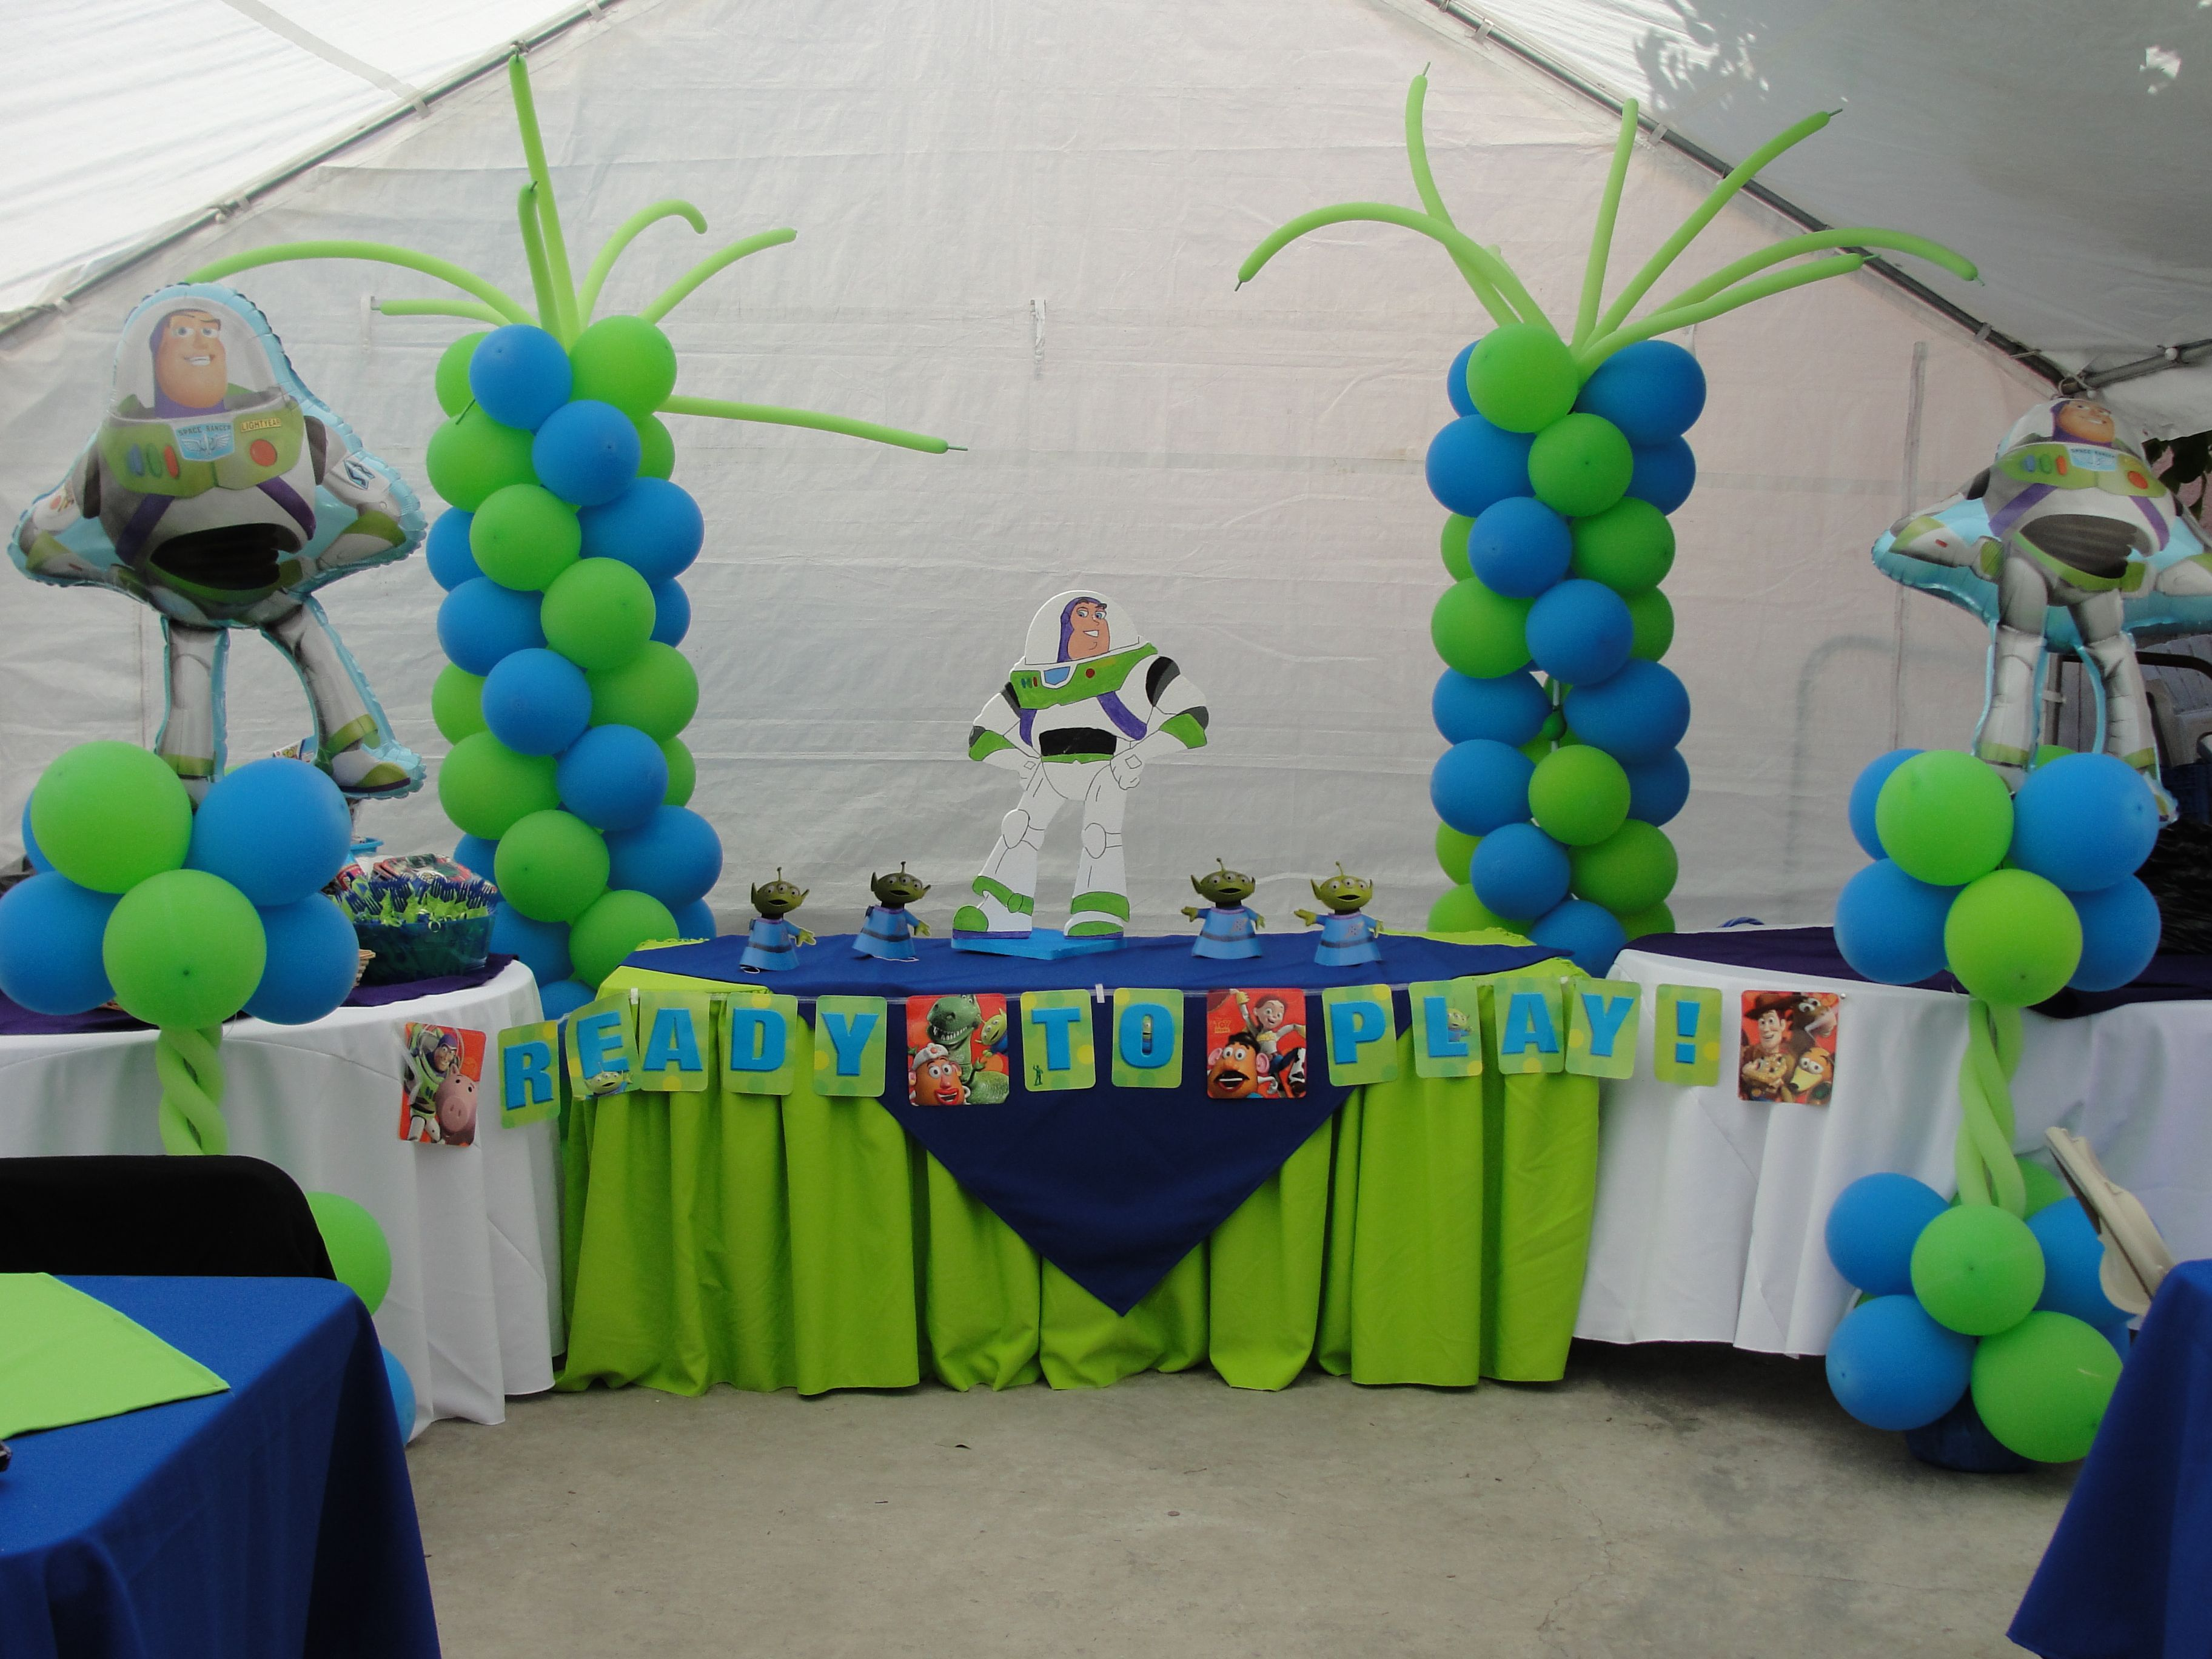 Superb Buzzlightyear Decoration To Infinity And Beyond Party Download Free Architecture Designs Scobabritishbridgeorg